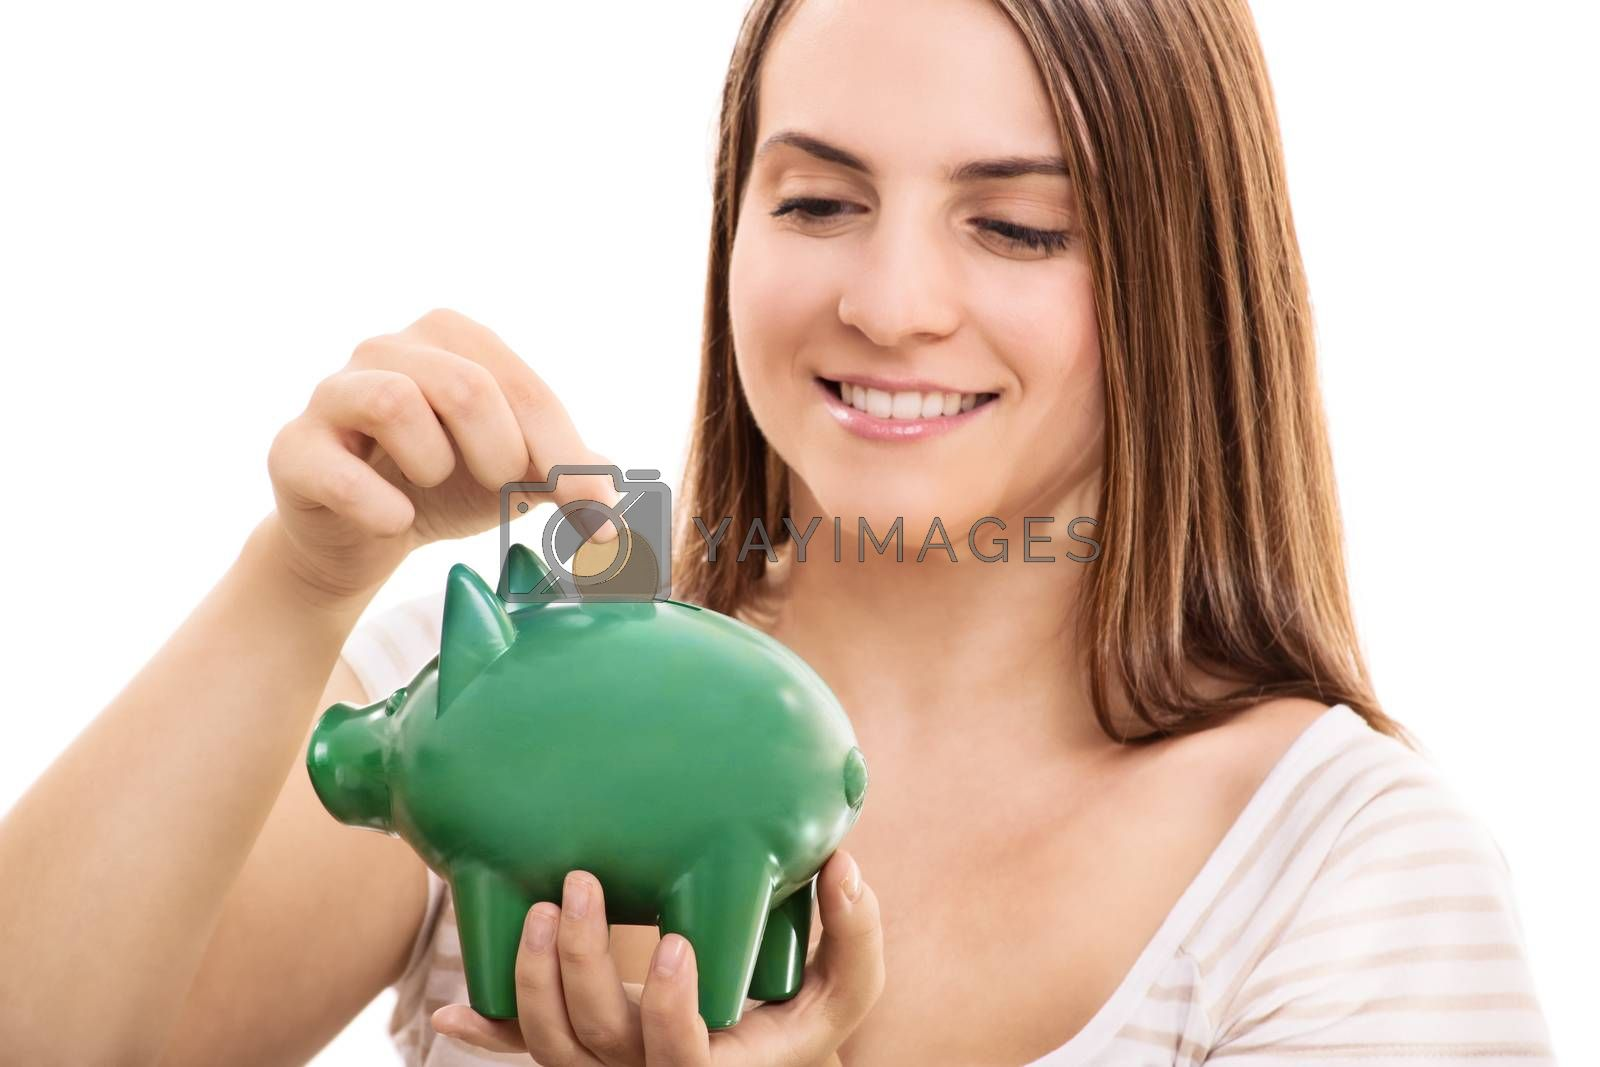 Young girl putting money in a piggy bank, isolated on white background.